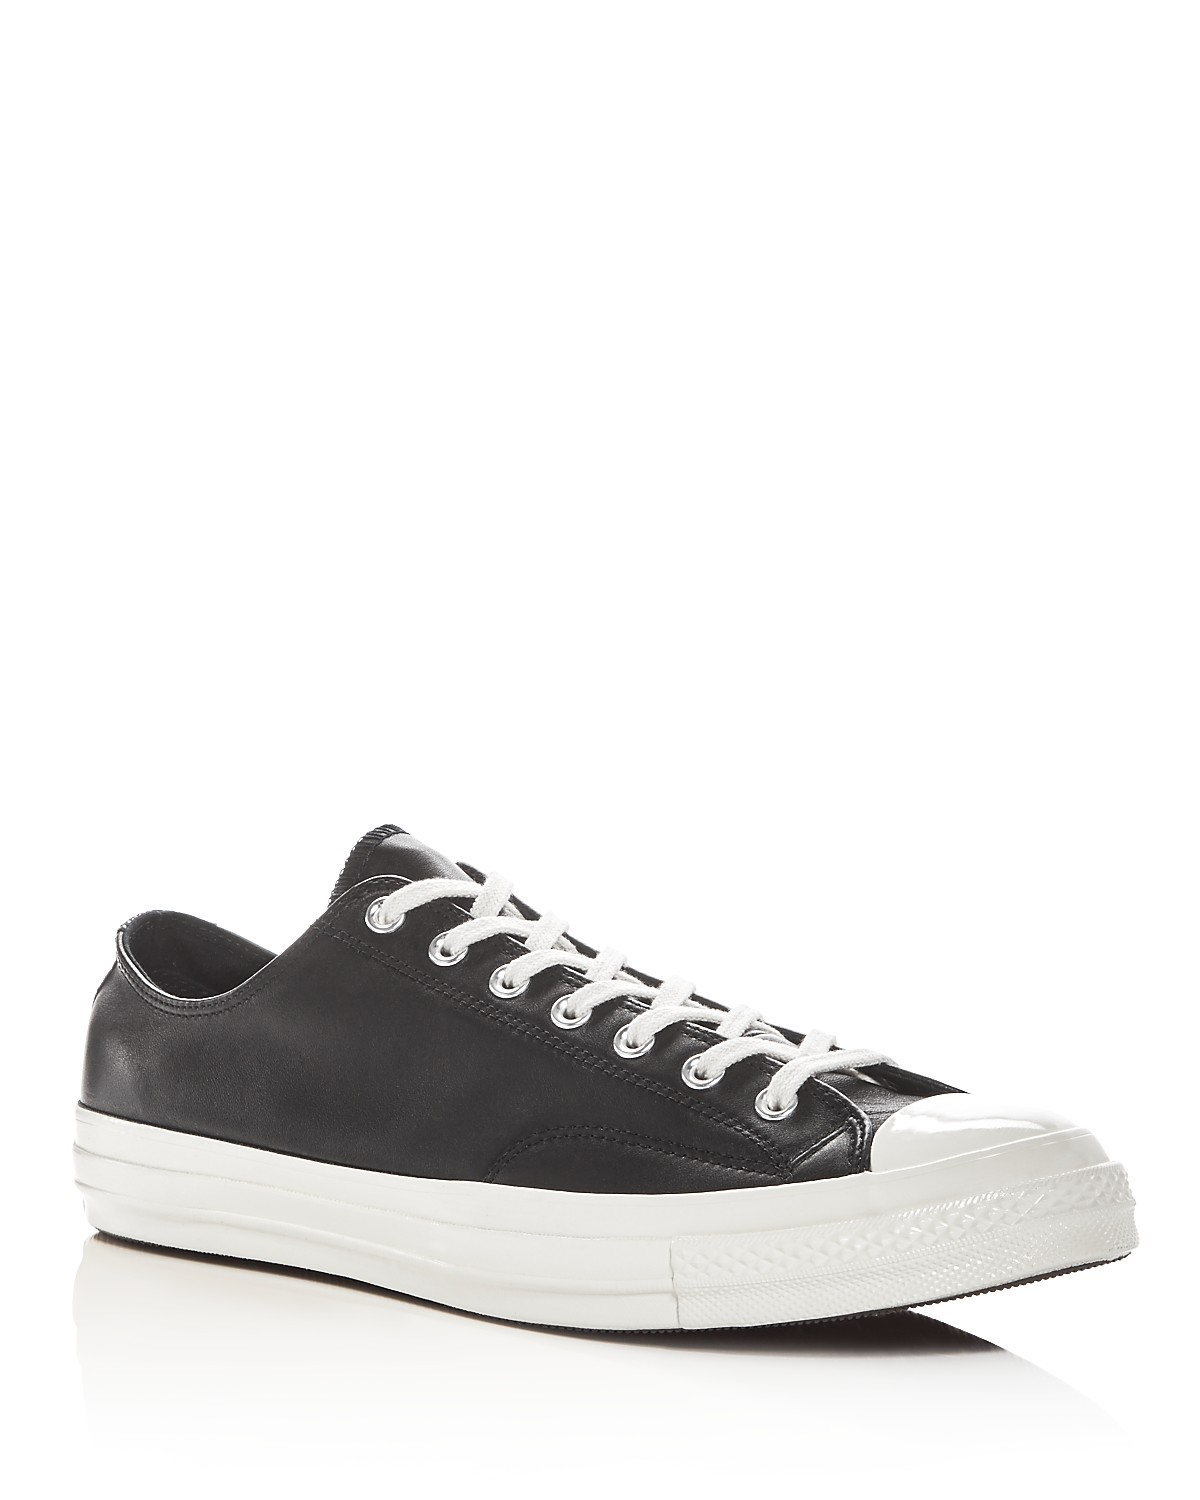 Converse Men's Chuck Taylor All Star 70 Lace Up Sneakers M1Ca67